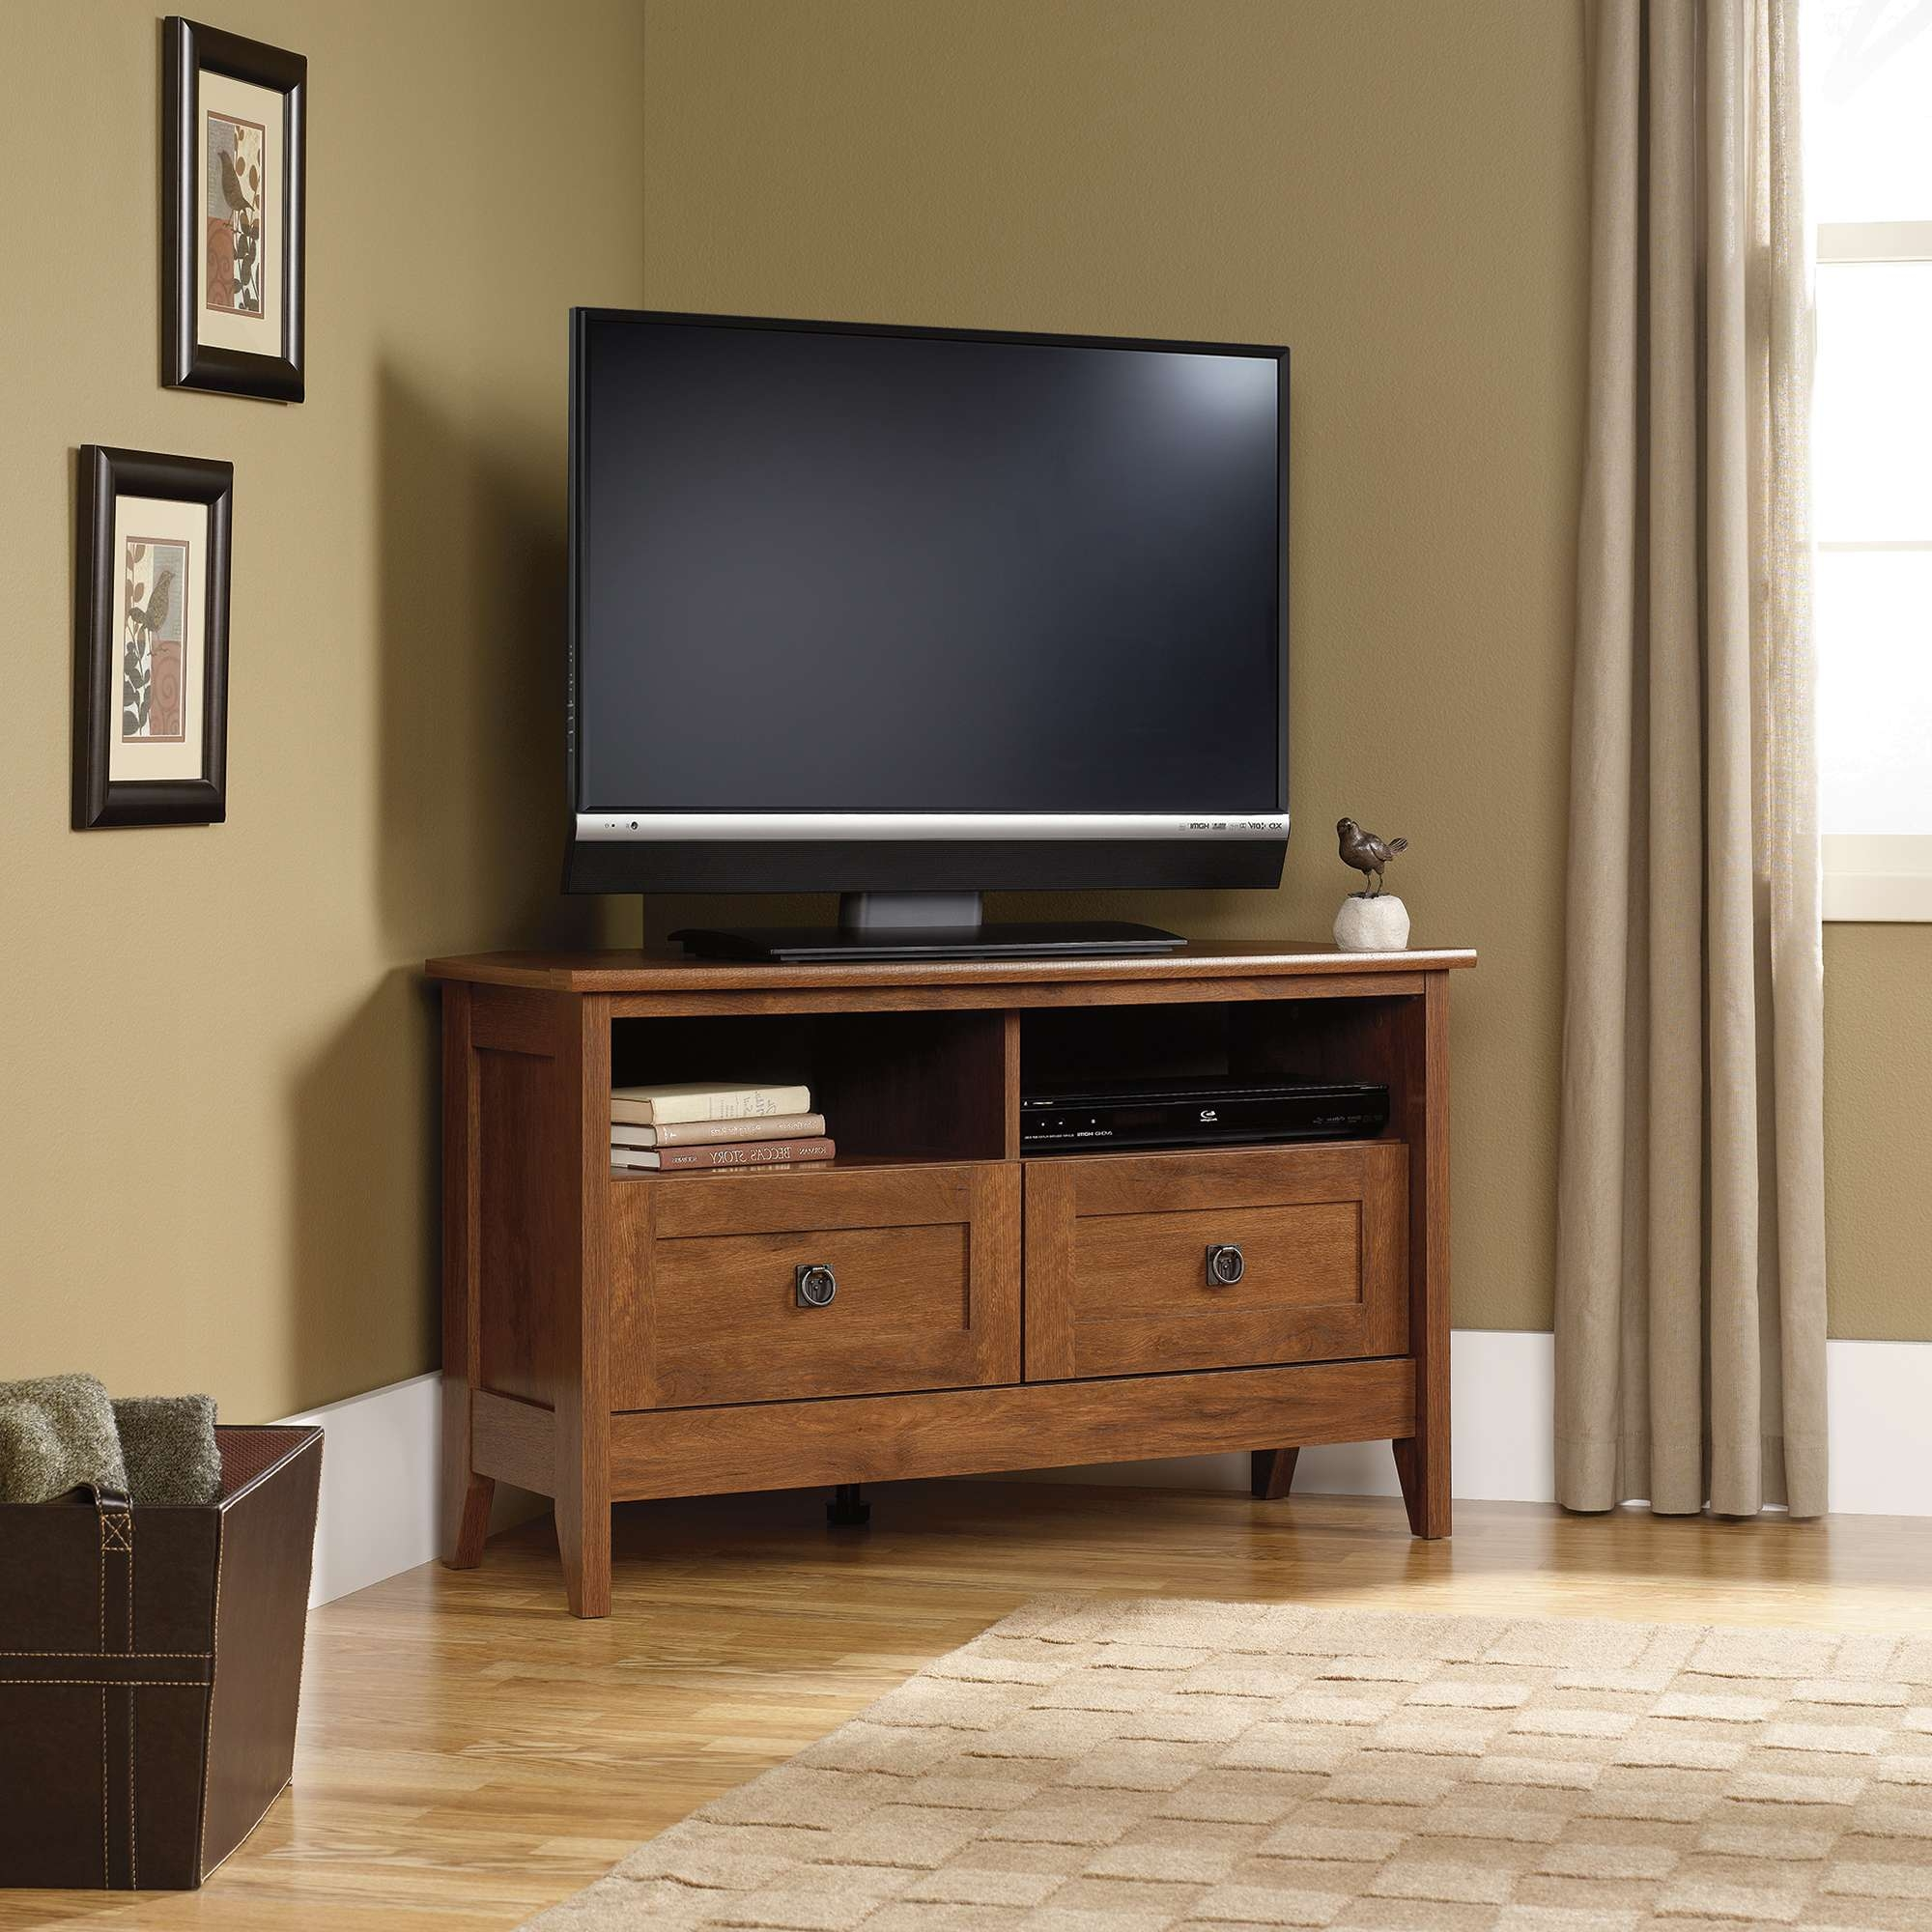 Sauder Select | Corner Tv Stand | 410627 | Sauder For Corner Tv Stands (View 14 of 15)